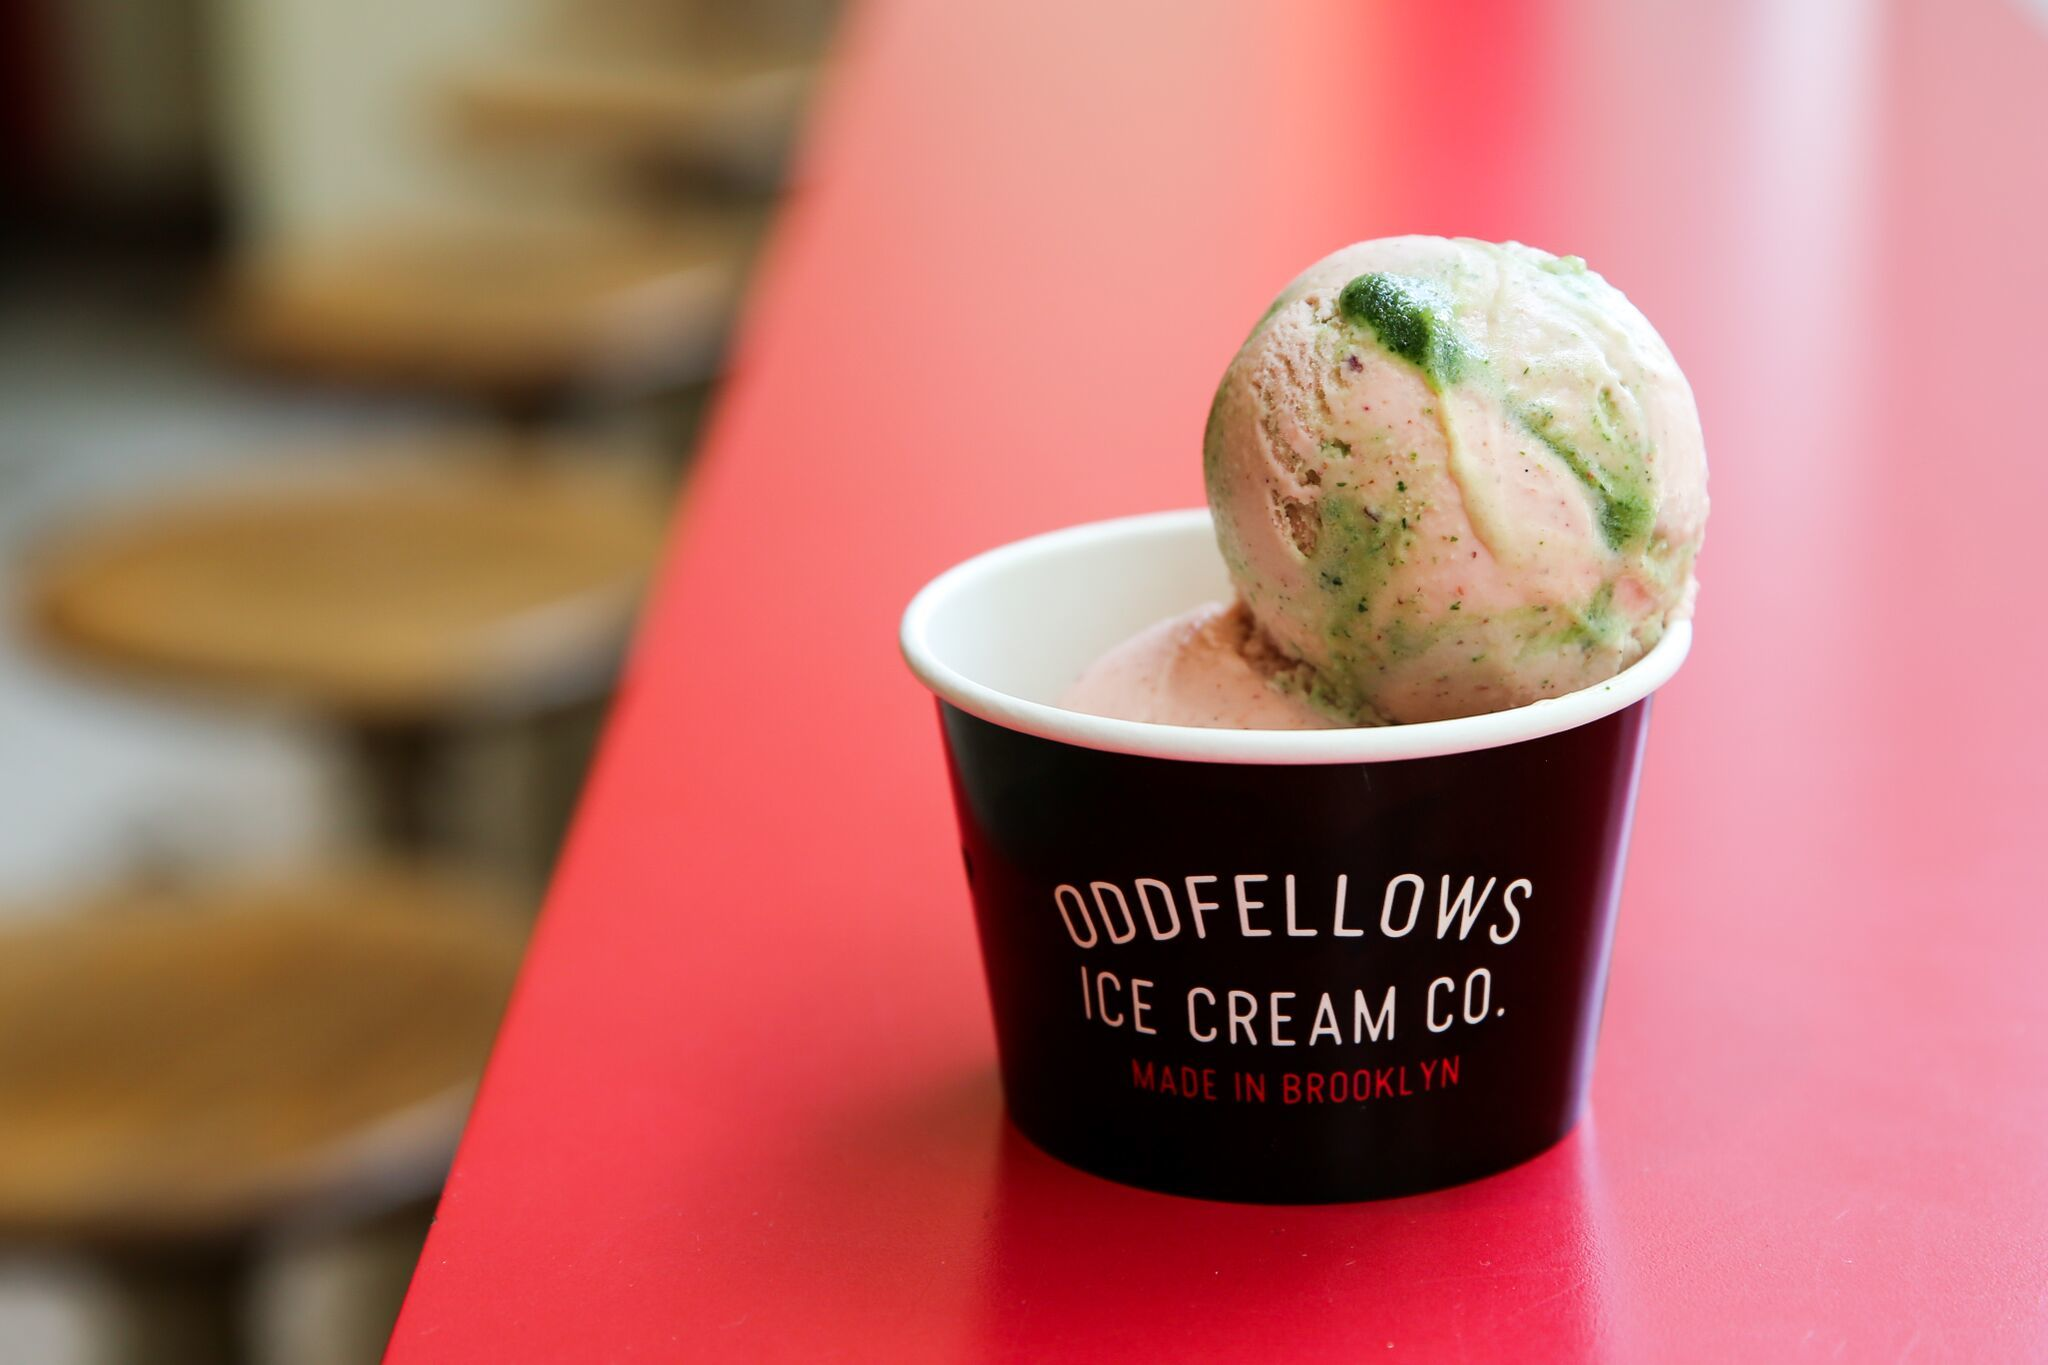 The best ice cream flavors this season